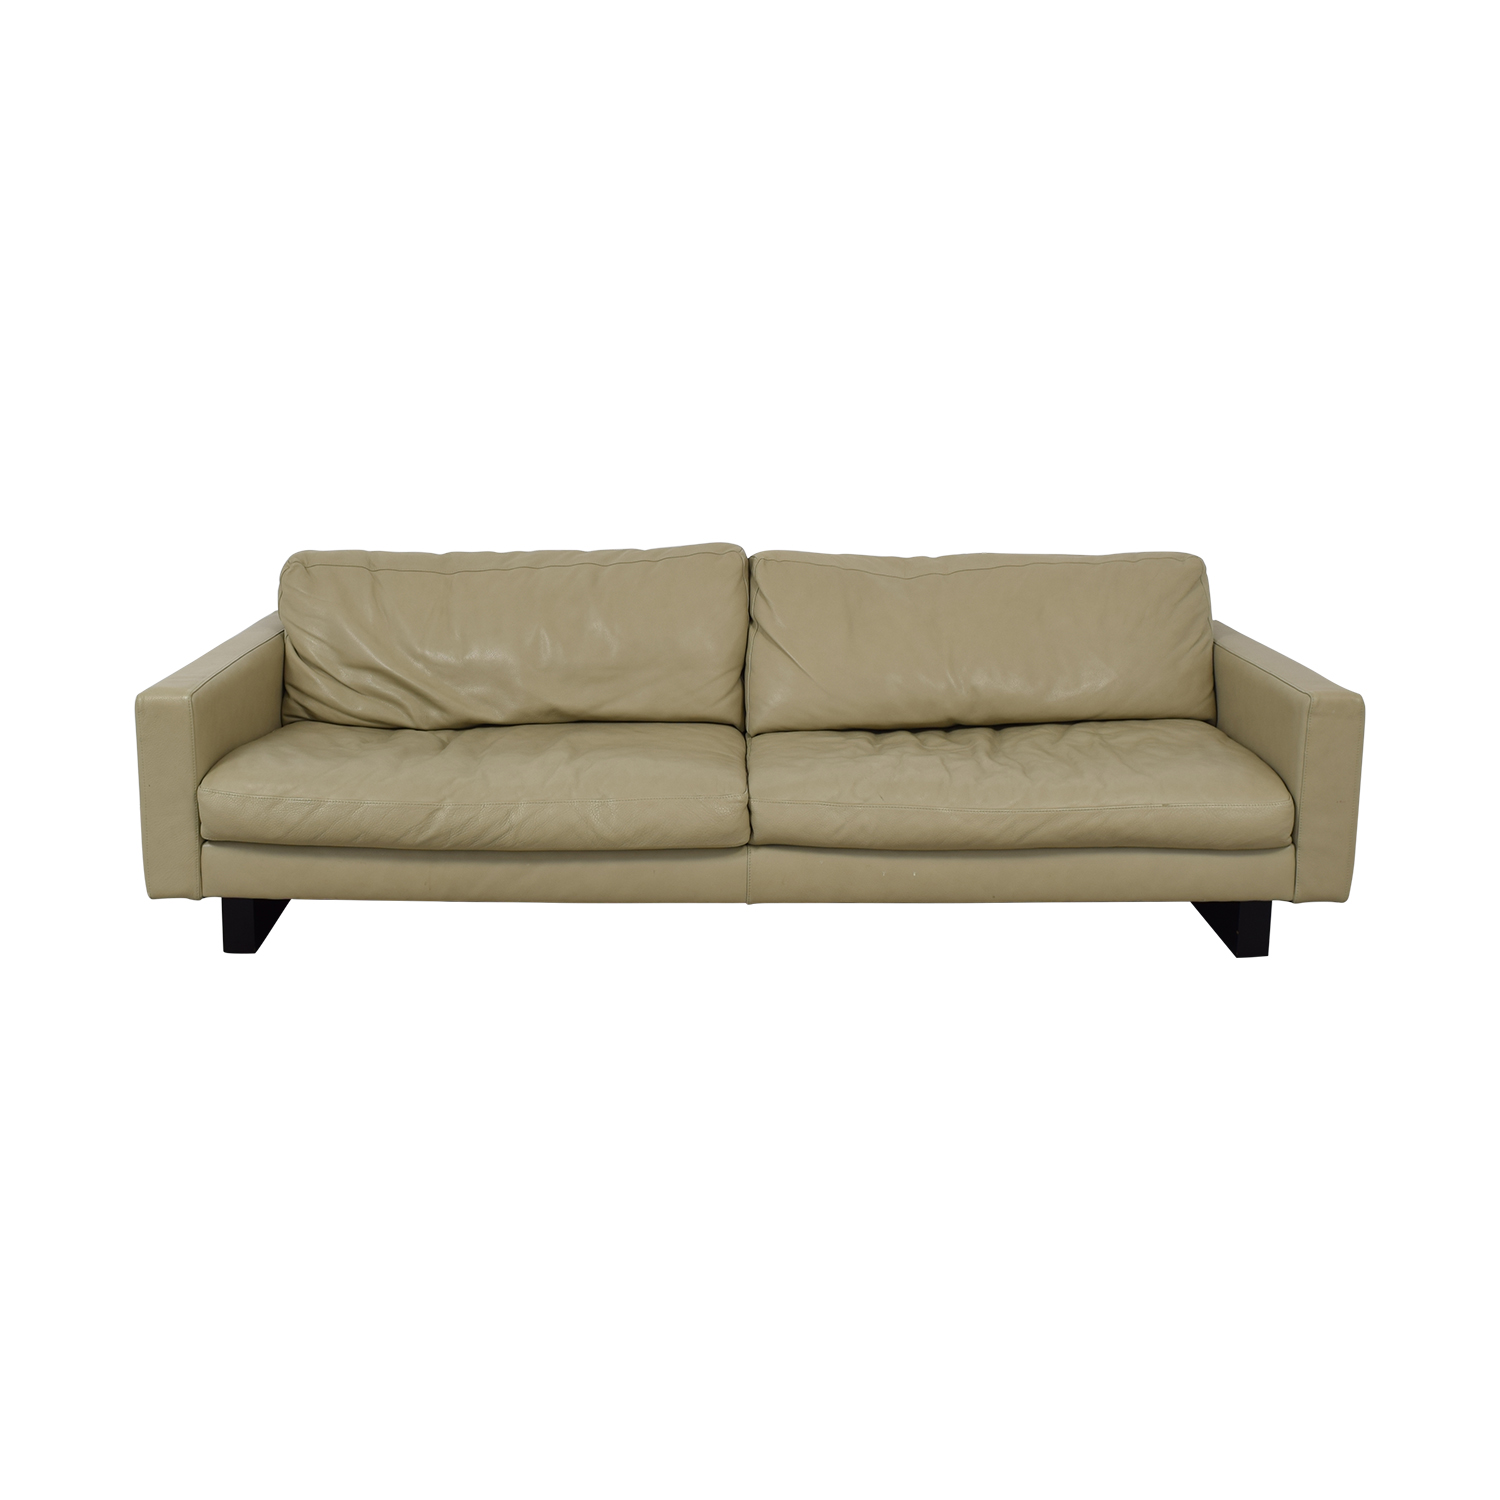 Room & Board Room & Board Hess Leather Sofa Classic Sofas